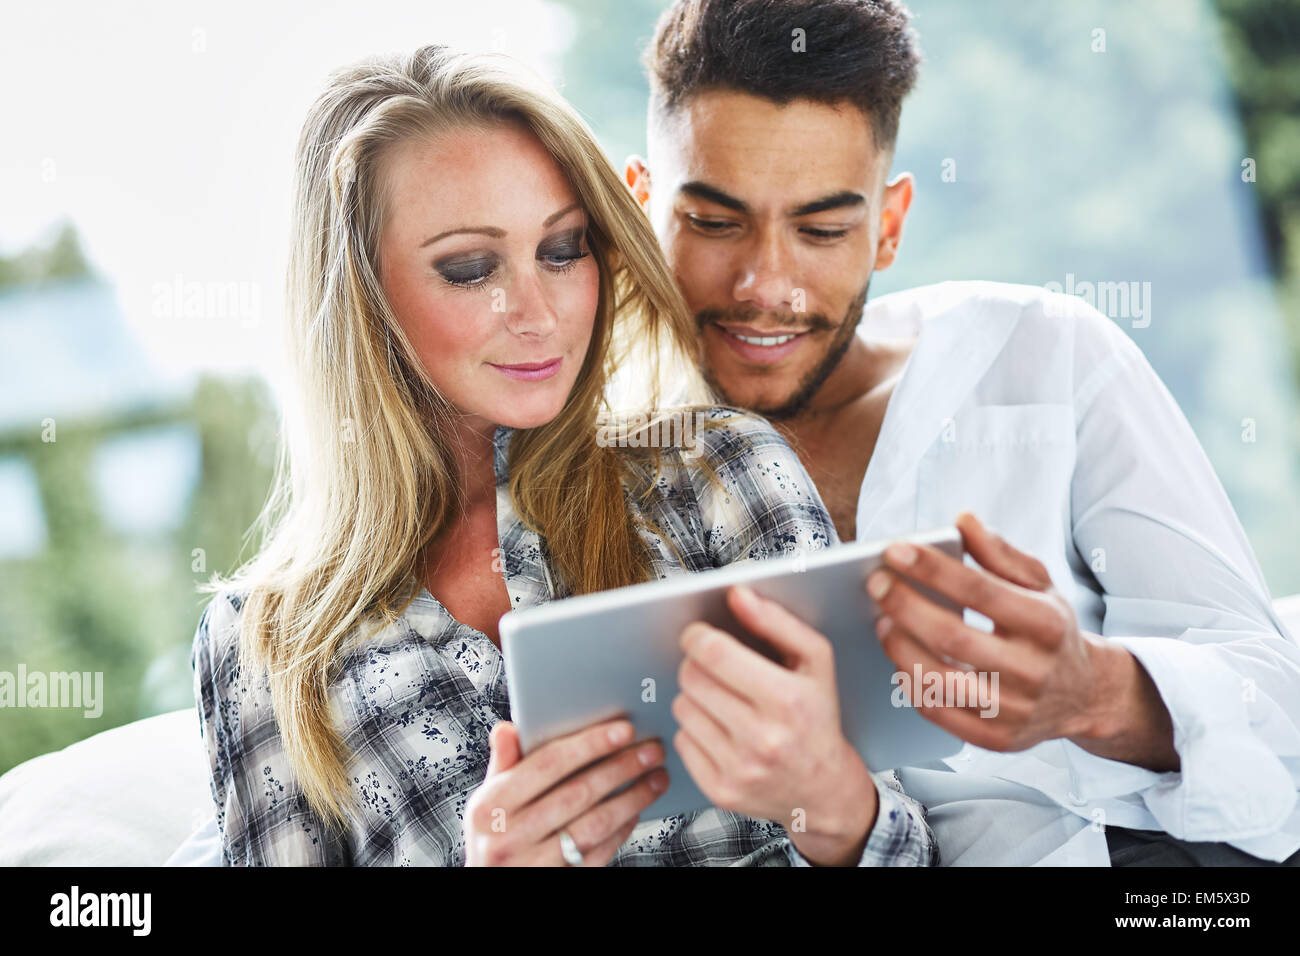 Couple looking at an iPad together - Stock Image